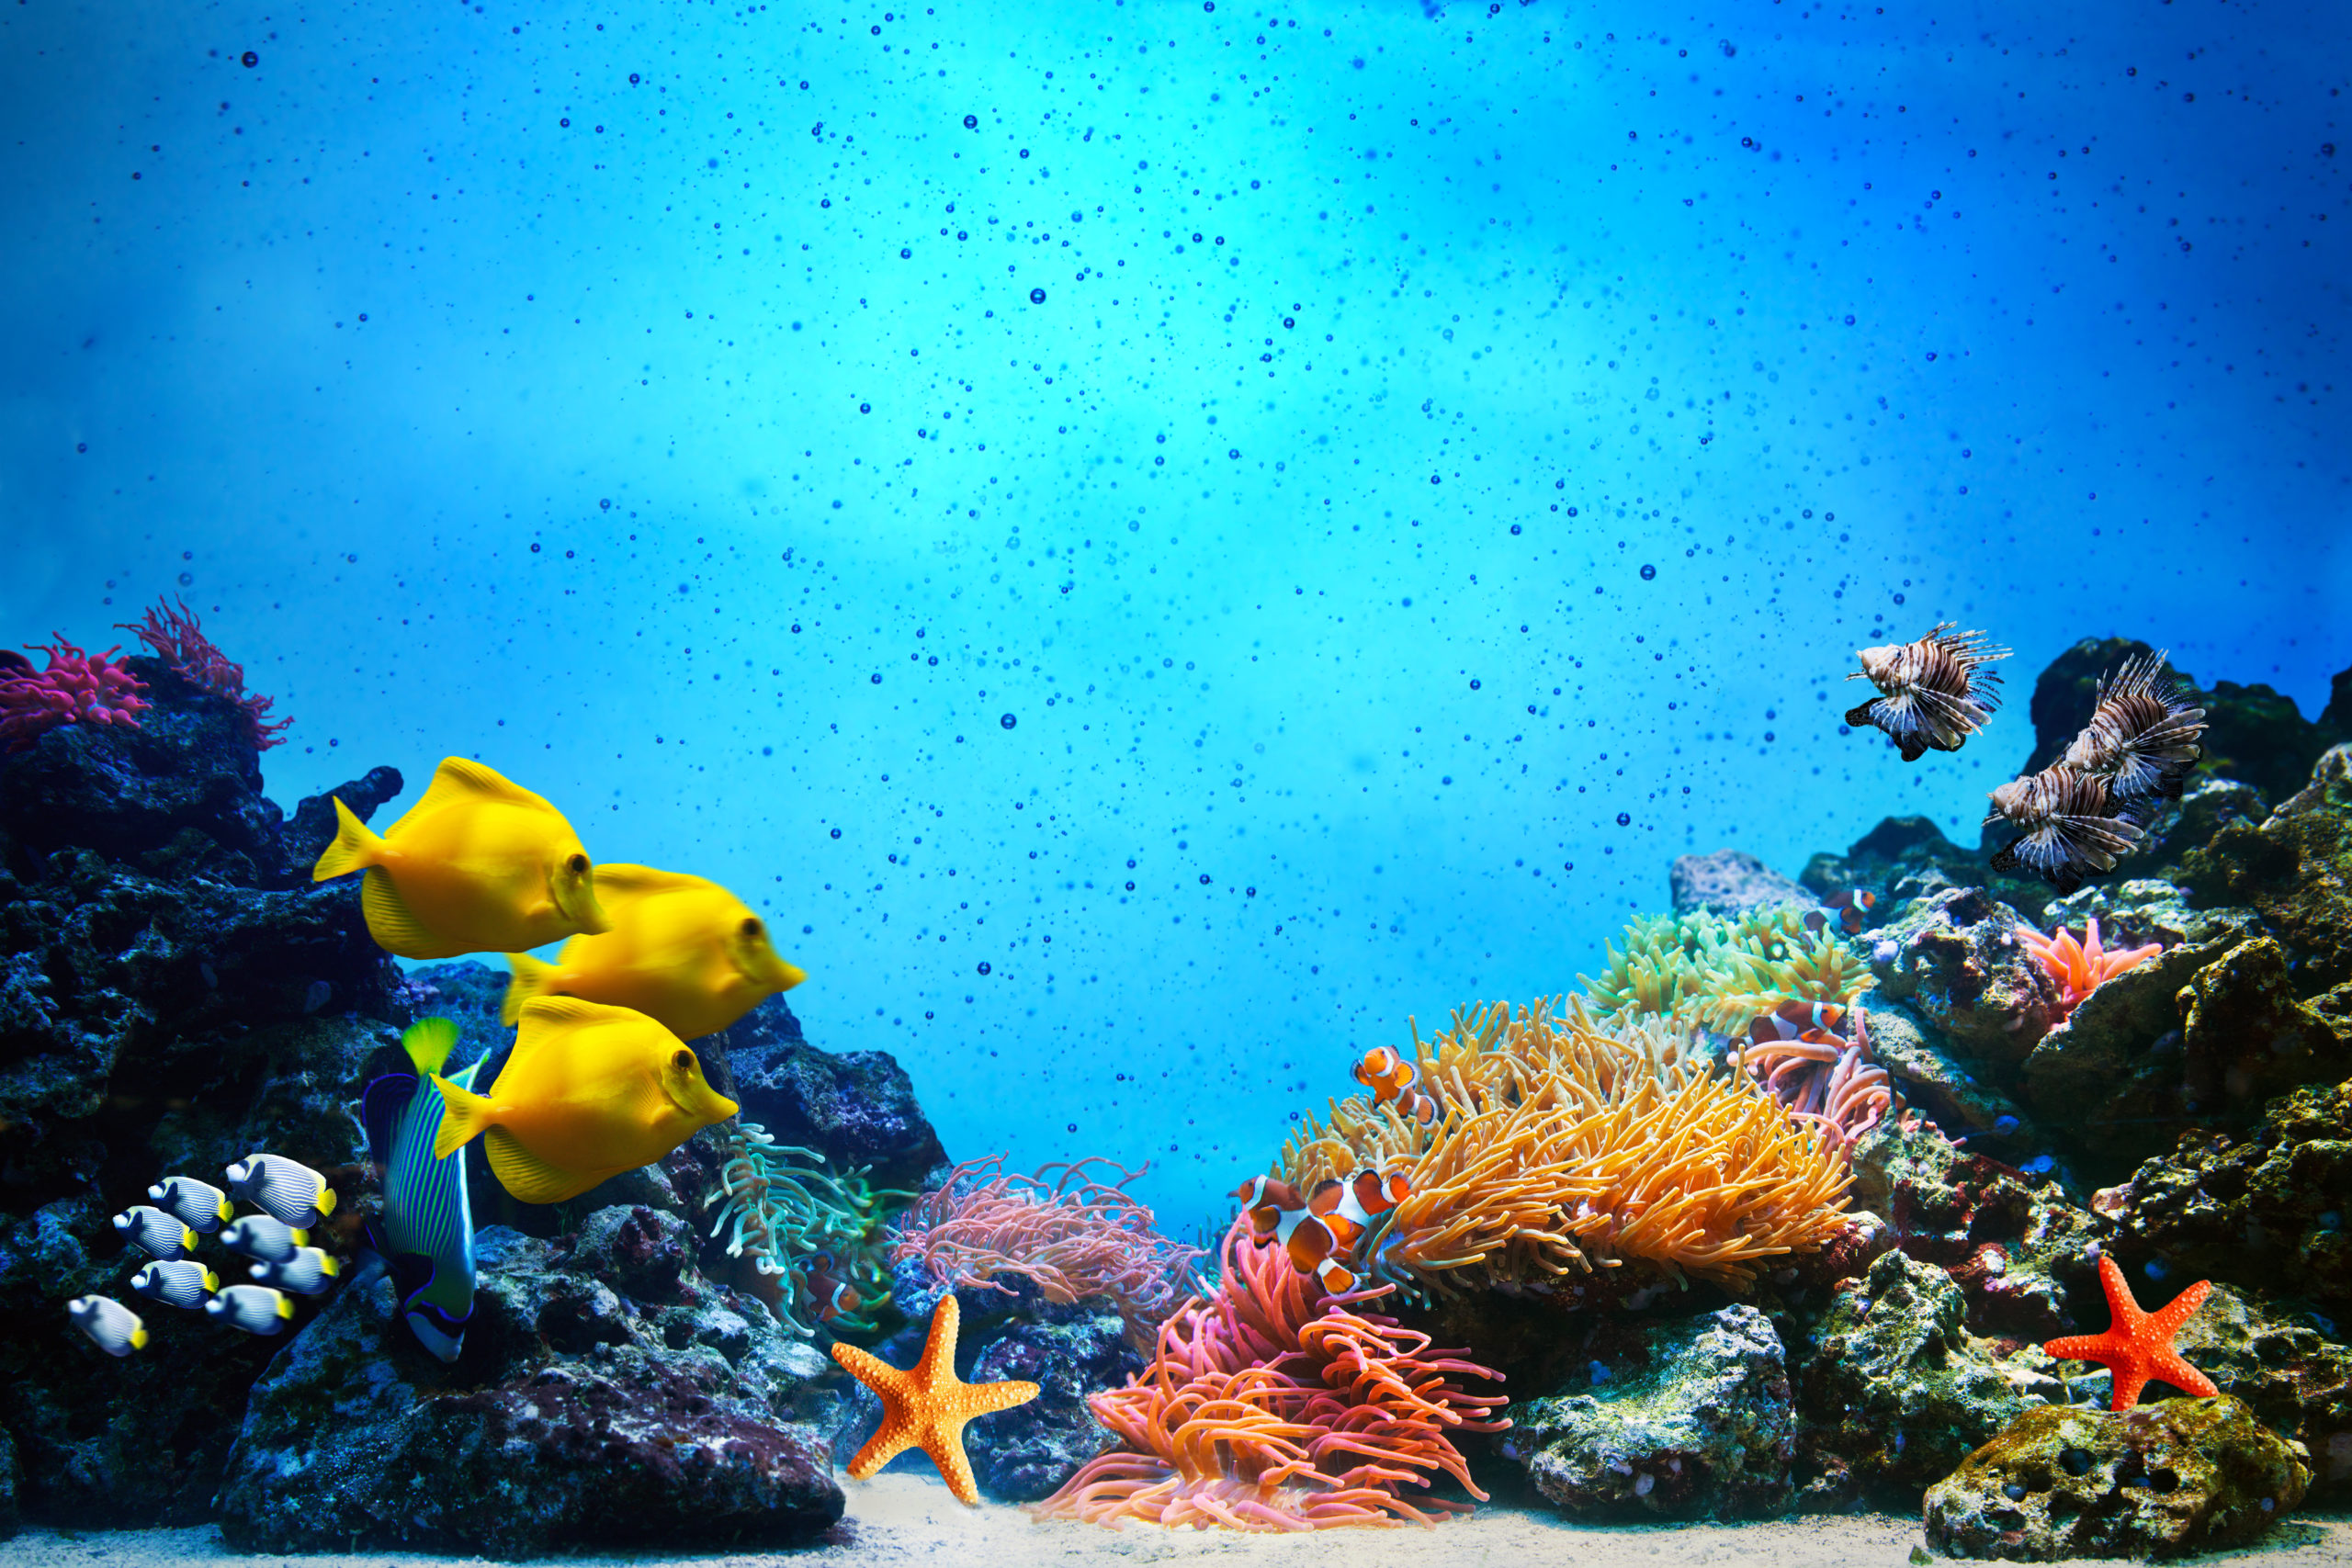 Underwater scene. Fall cleaning checklist for your aquarium